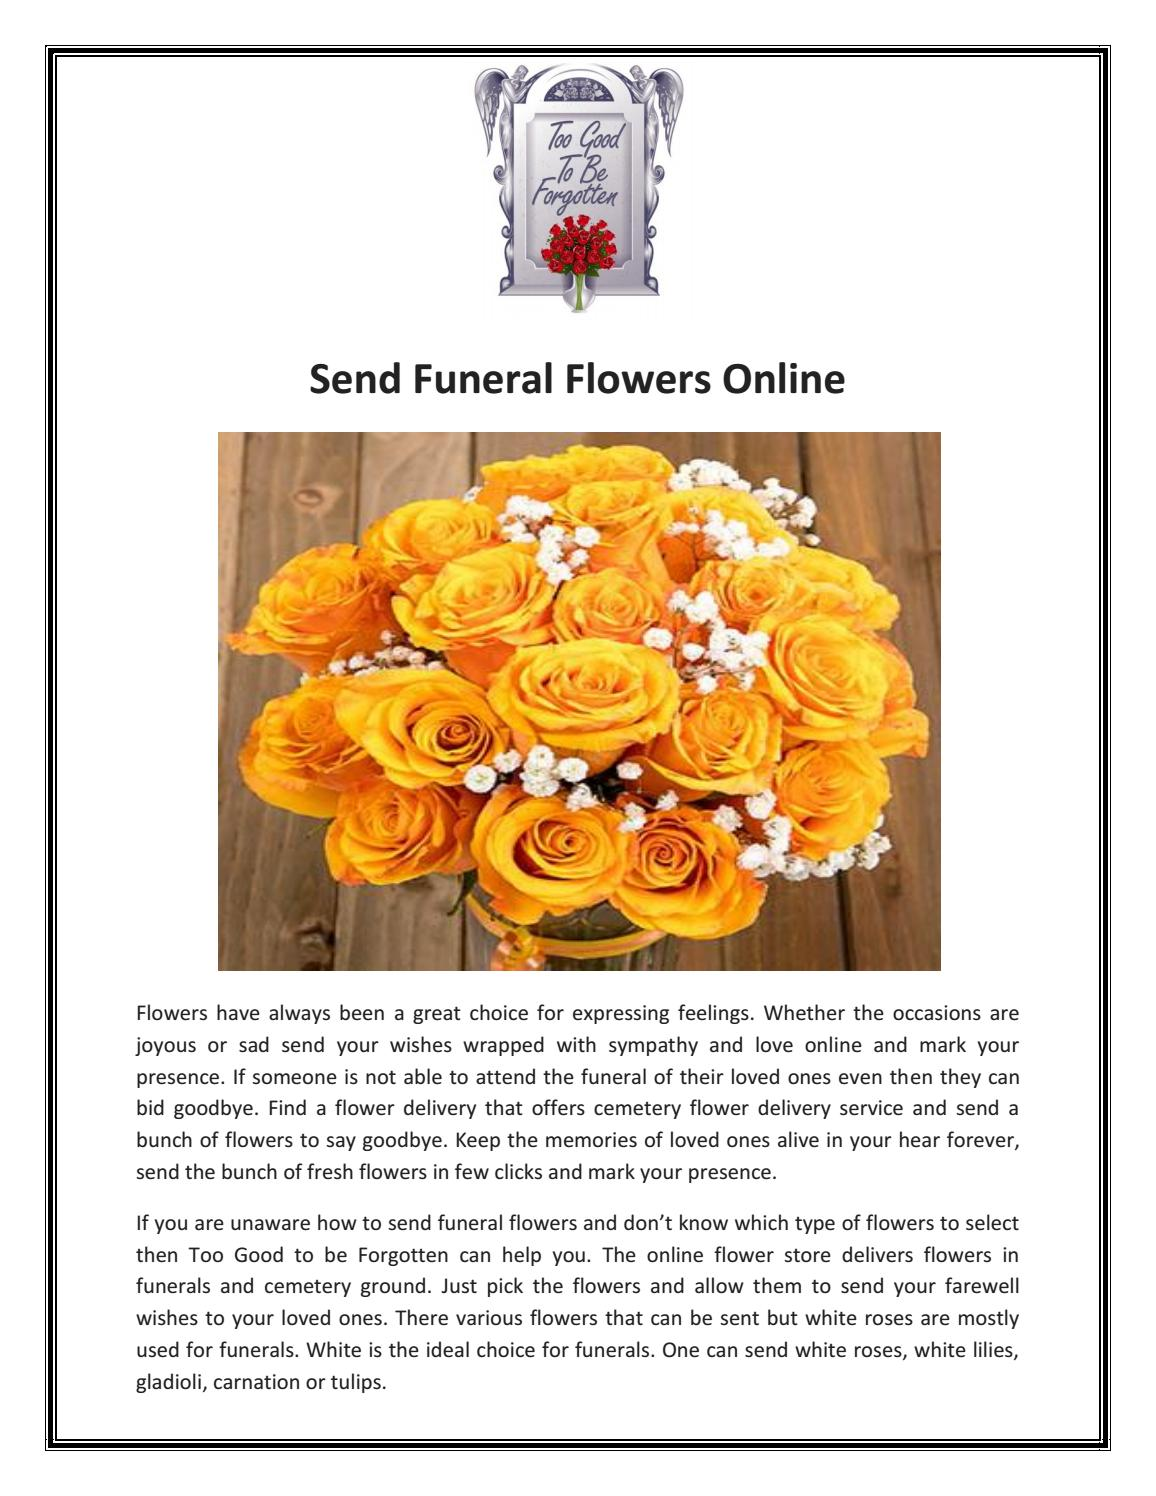 Send funeral flowers online by too good to be forgotten issuu izmirmasajfo